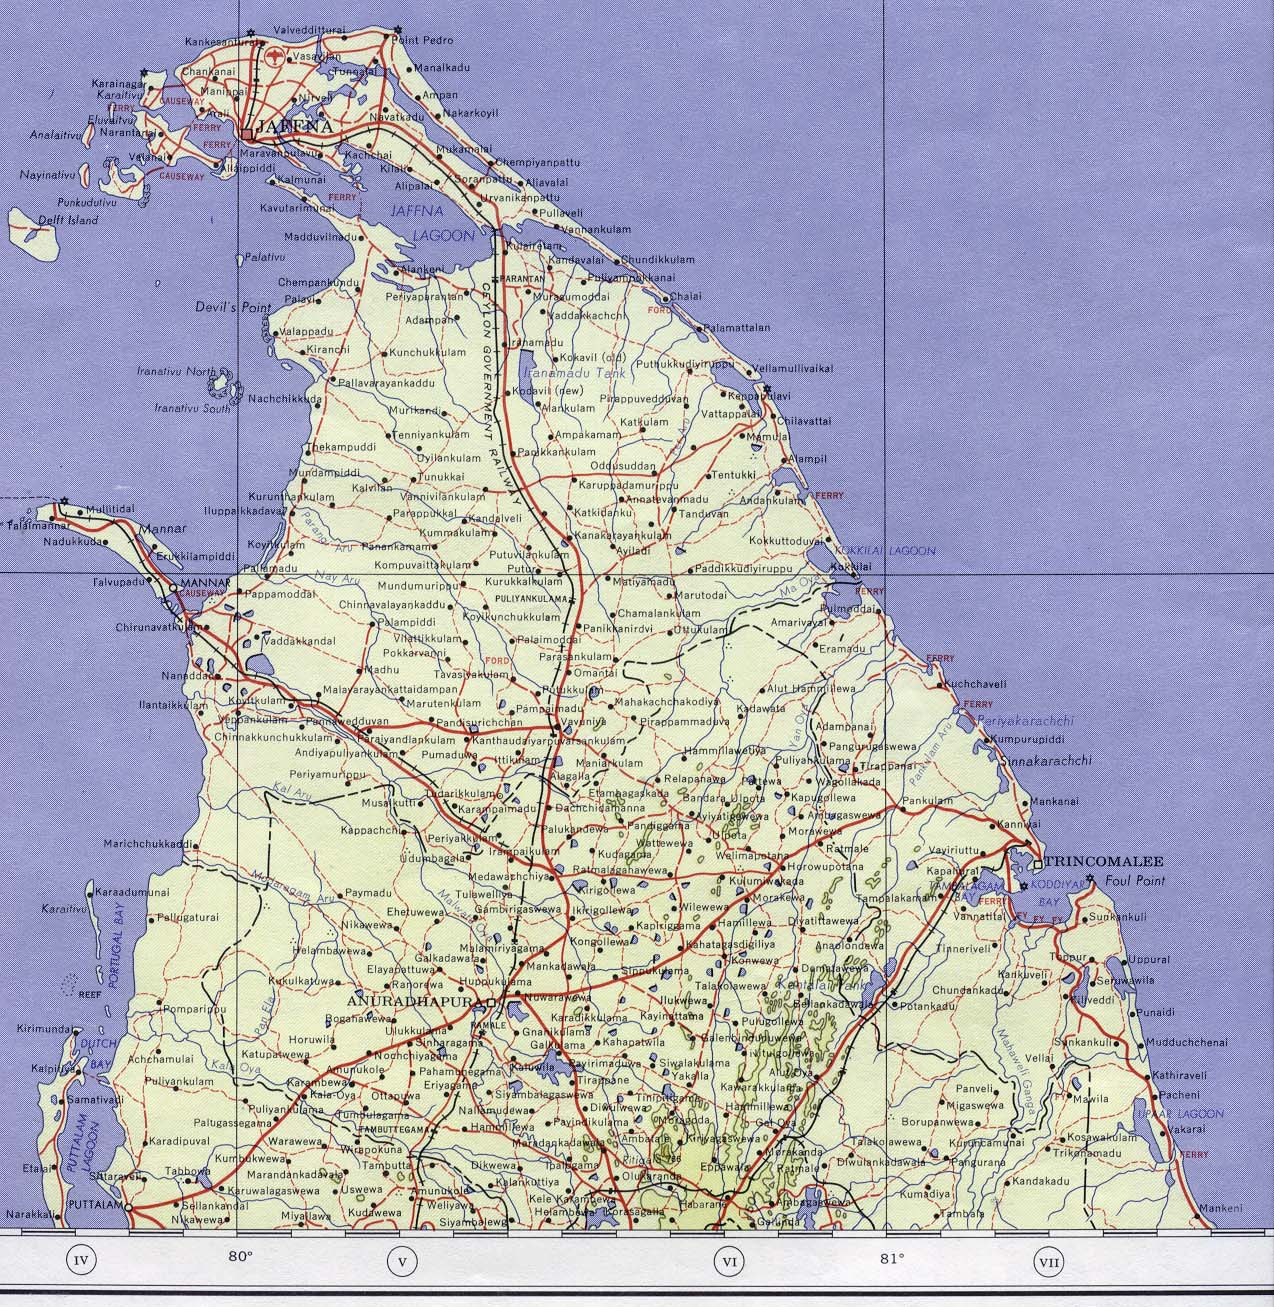 Sri Lanka Maps PerryCastañeda Map Collection UT Library Online - Map us 81